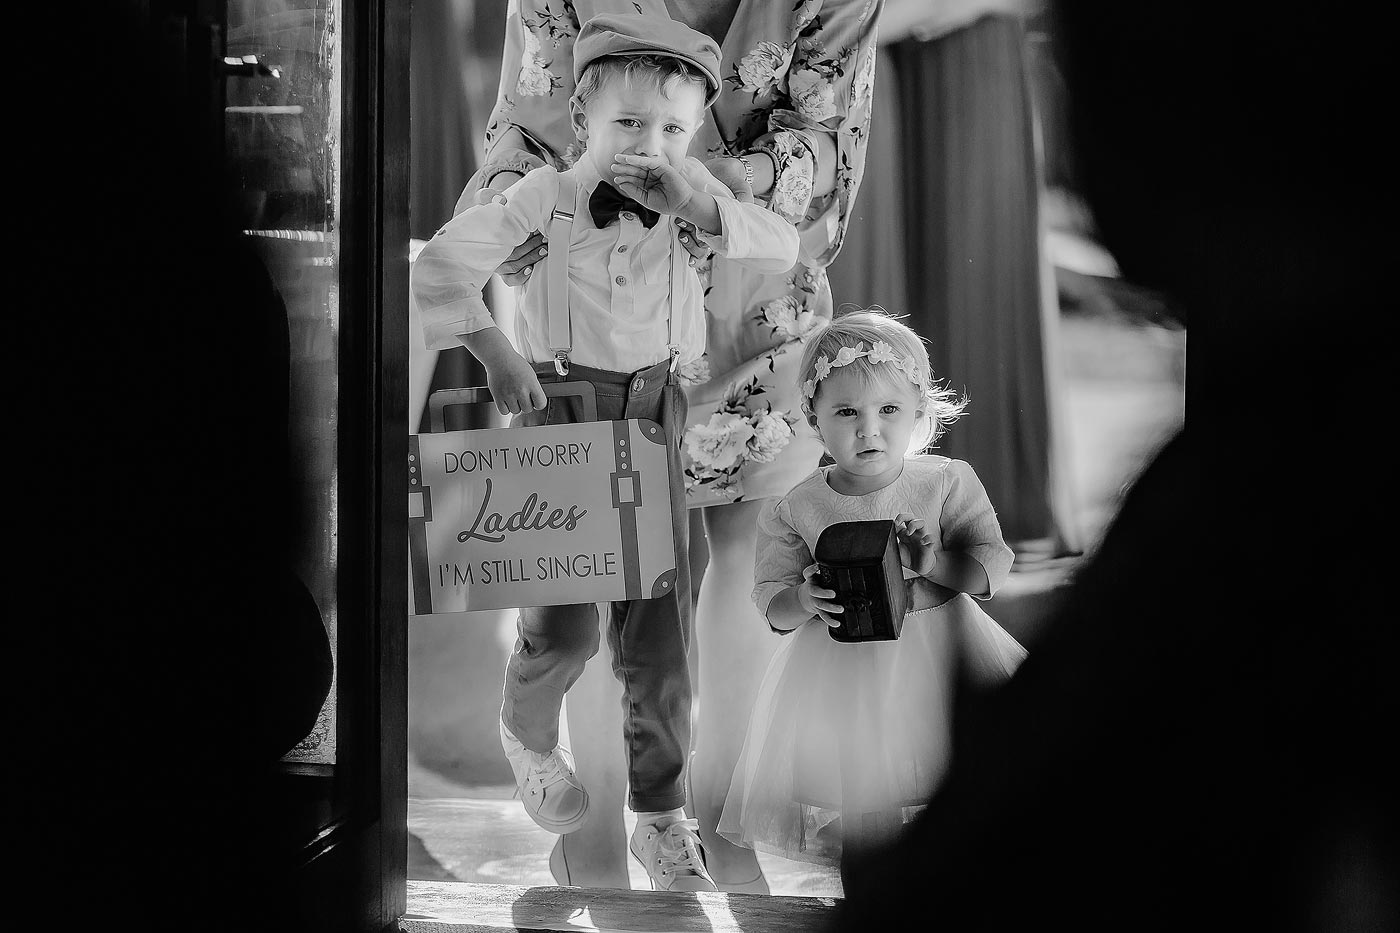 Copy of Emotional Moment with flower girl and ringbearer before wedding ceremony in South Africa.